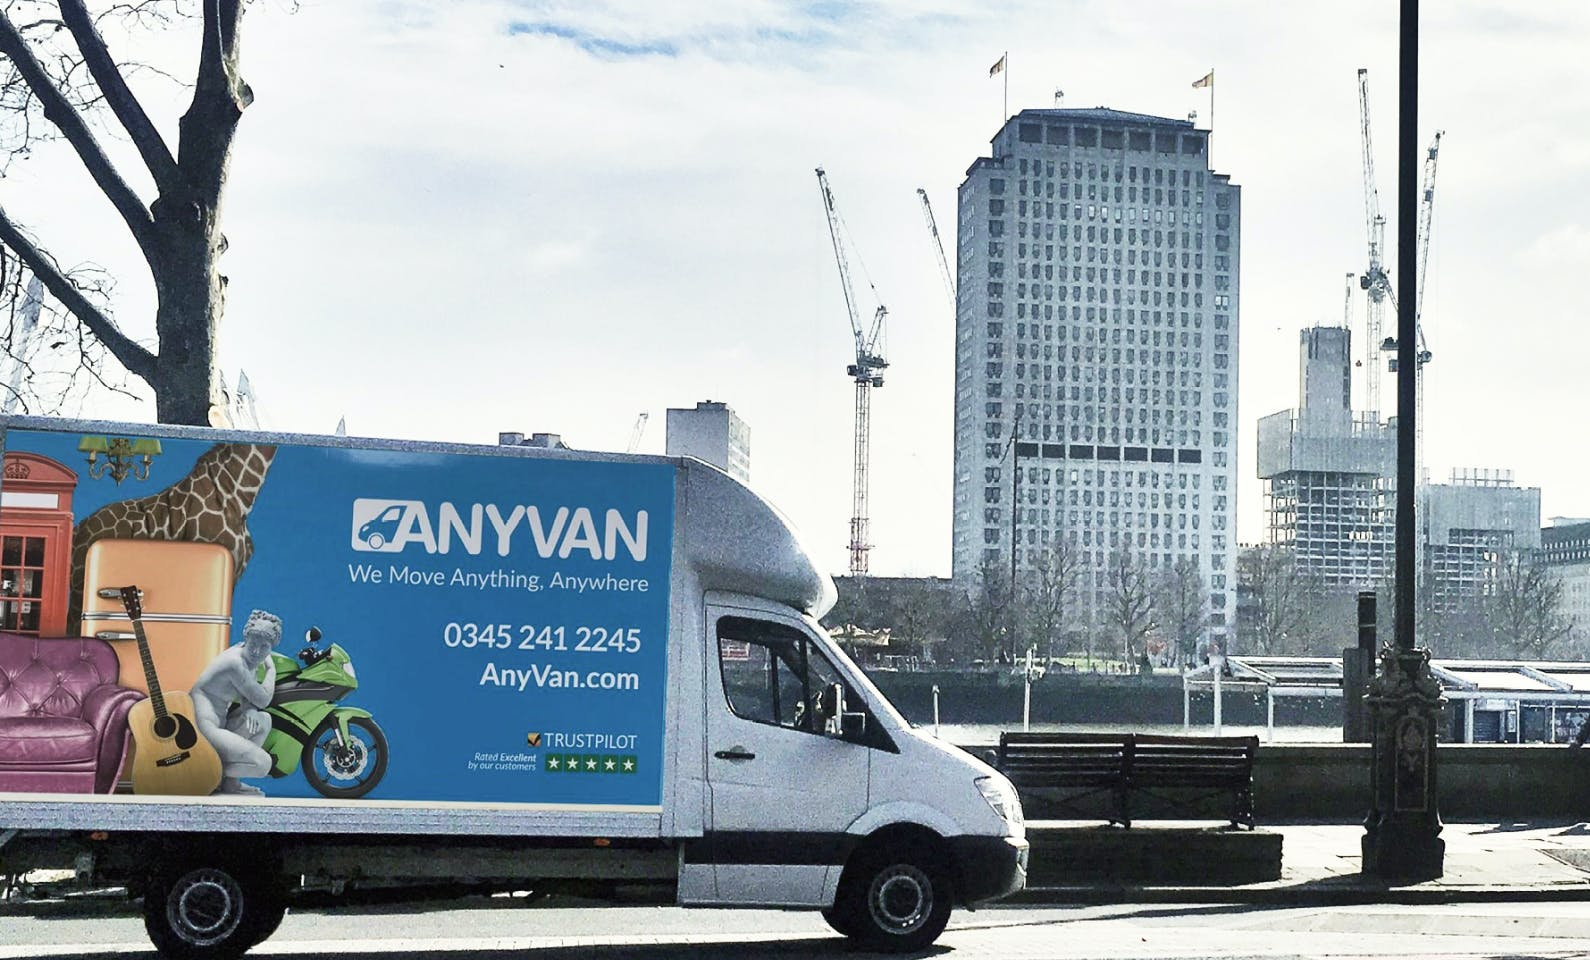 'AnyVan' Increases Payment Approval Rates